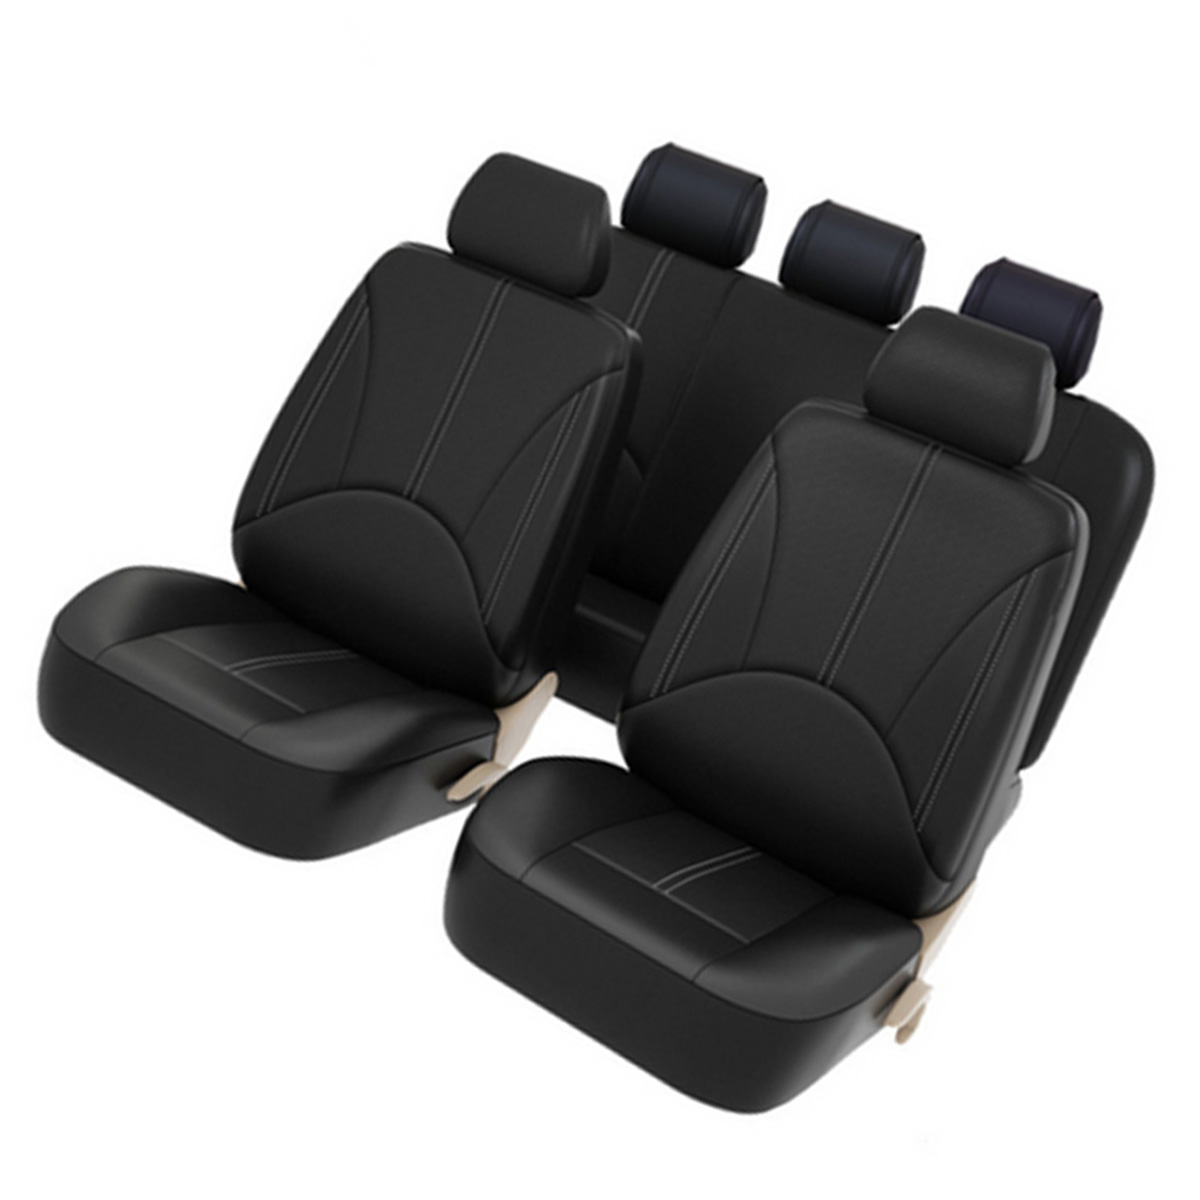 Black PU Leather Car Front/Back Seat Cover For Most Car Seats Back Seat Bottom Cover Head Rest Covers Car Interior Decoration